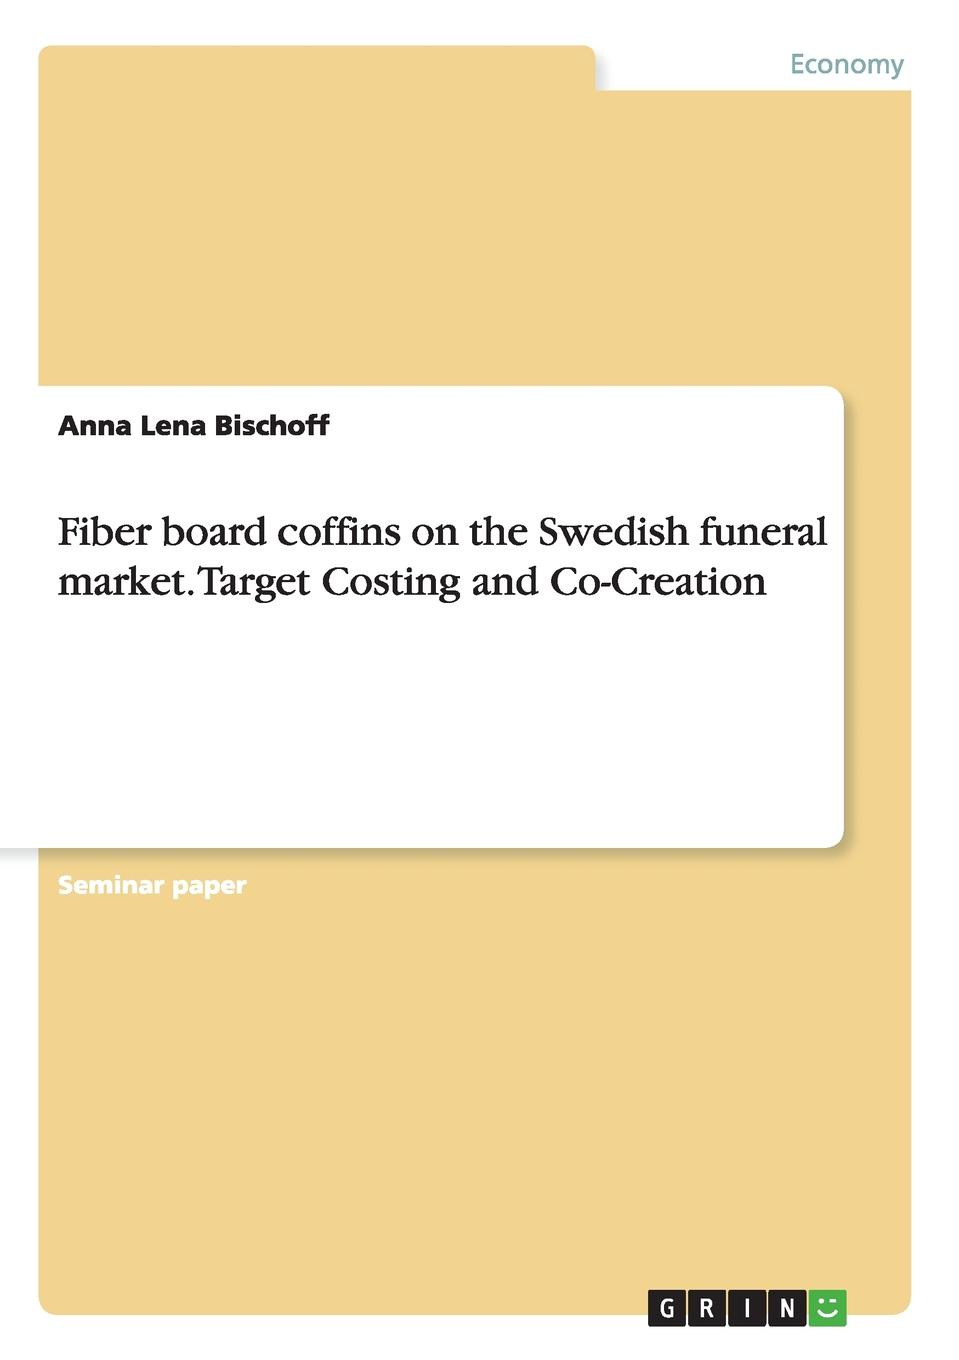 Anna Lena Bischoff Fiber board coffins on the Swedish funeral market. Target Costing and Co-Creation halil kiymaz market microstructure in emerging and developed markets price discovery information flows and transaction costs